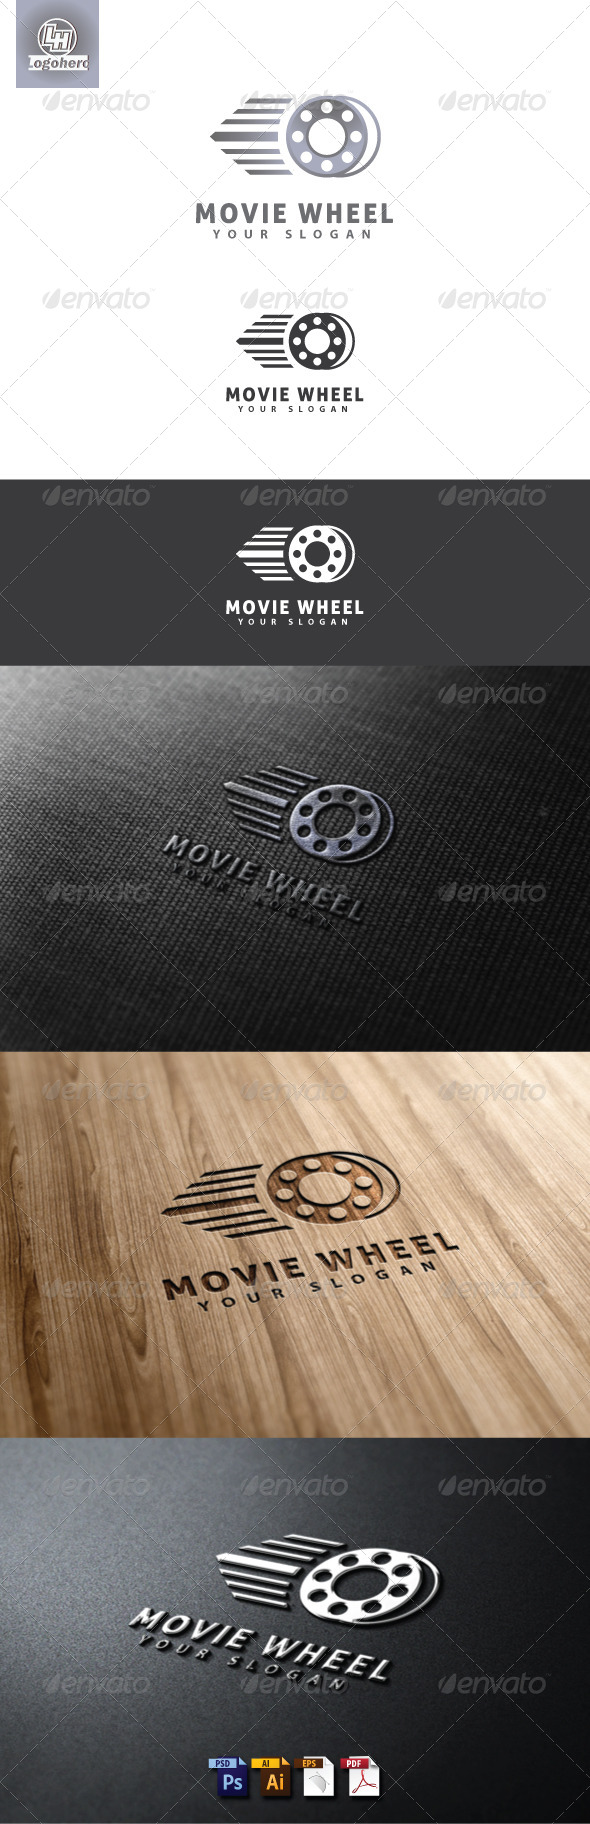 Movie Wheel Logo Template